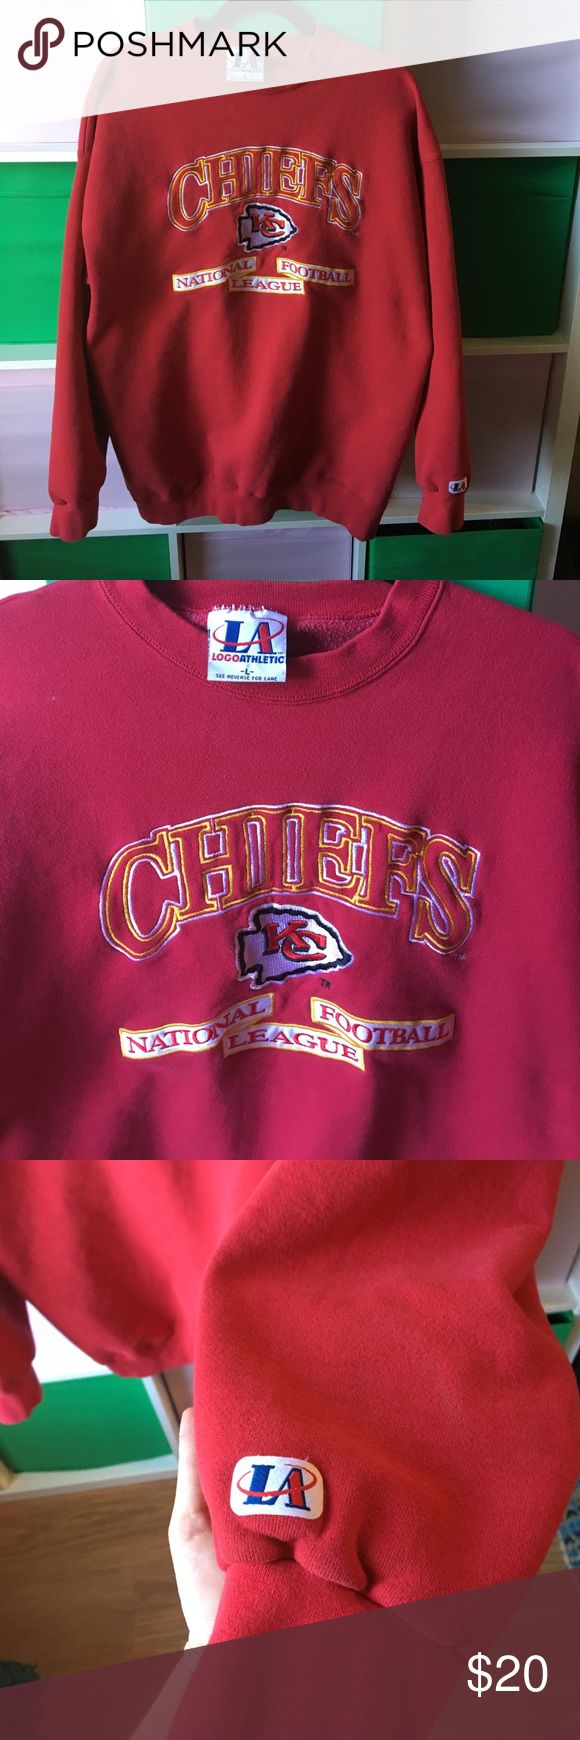 Vintage KC Kansas City Chiefs NFL sweatshirt Awesome vintage KC sweater. No piling or flaws. Show your KC NFL pride Jackets & Coats